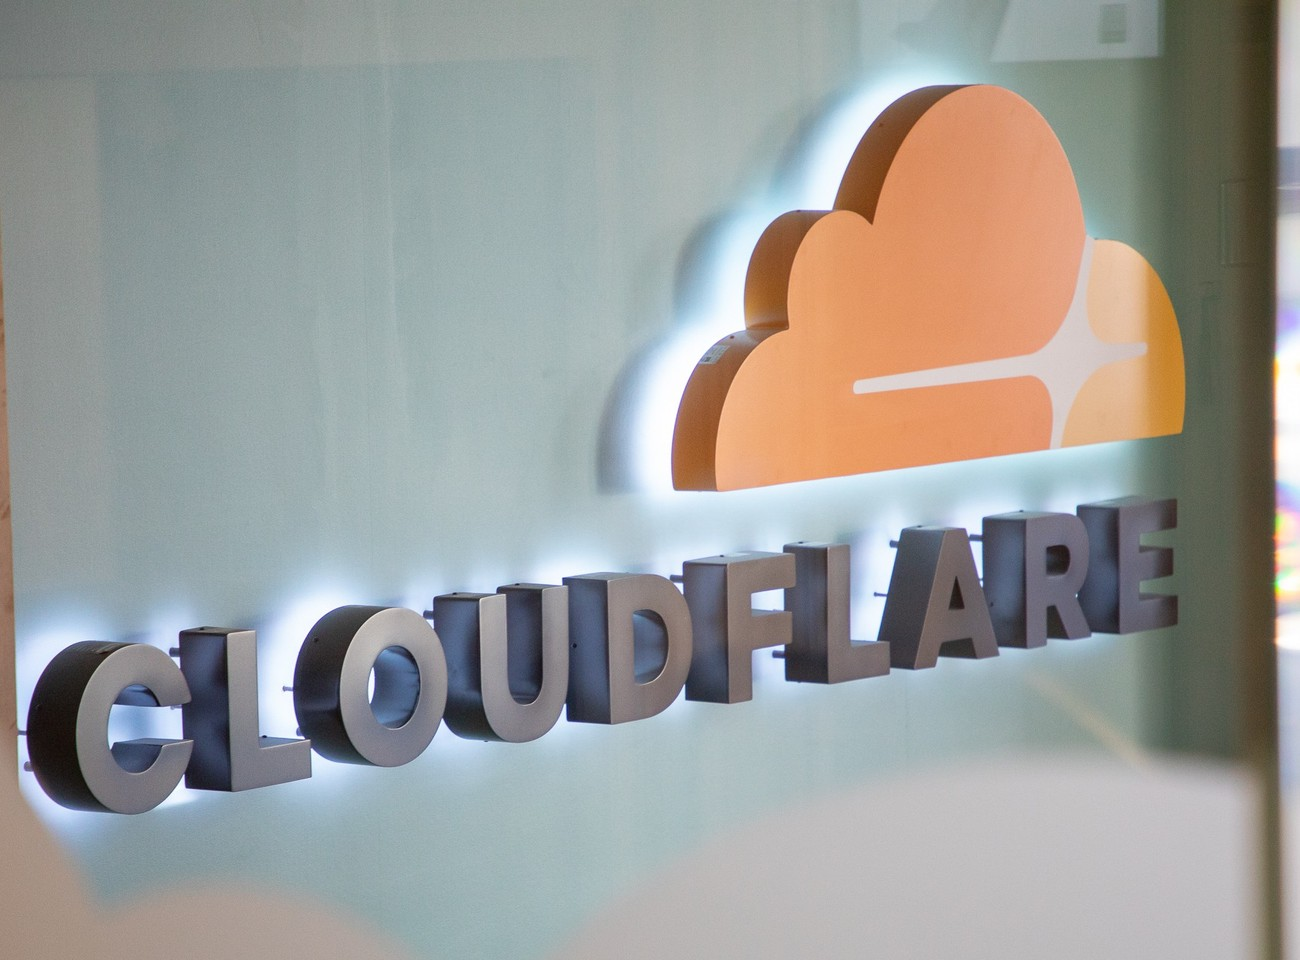 Cloudflare Careers